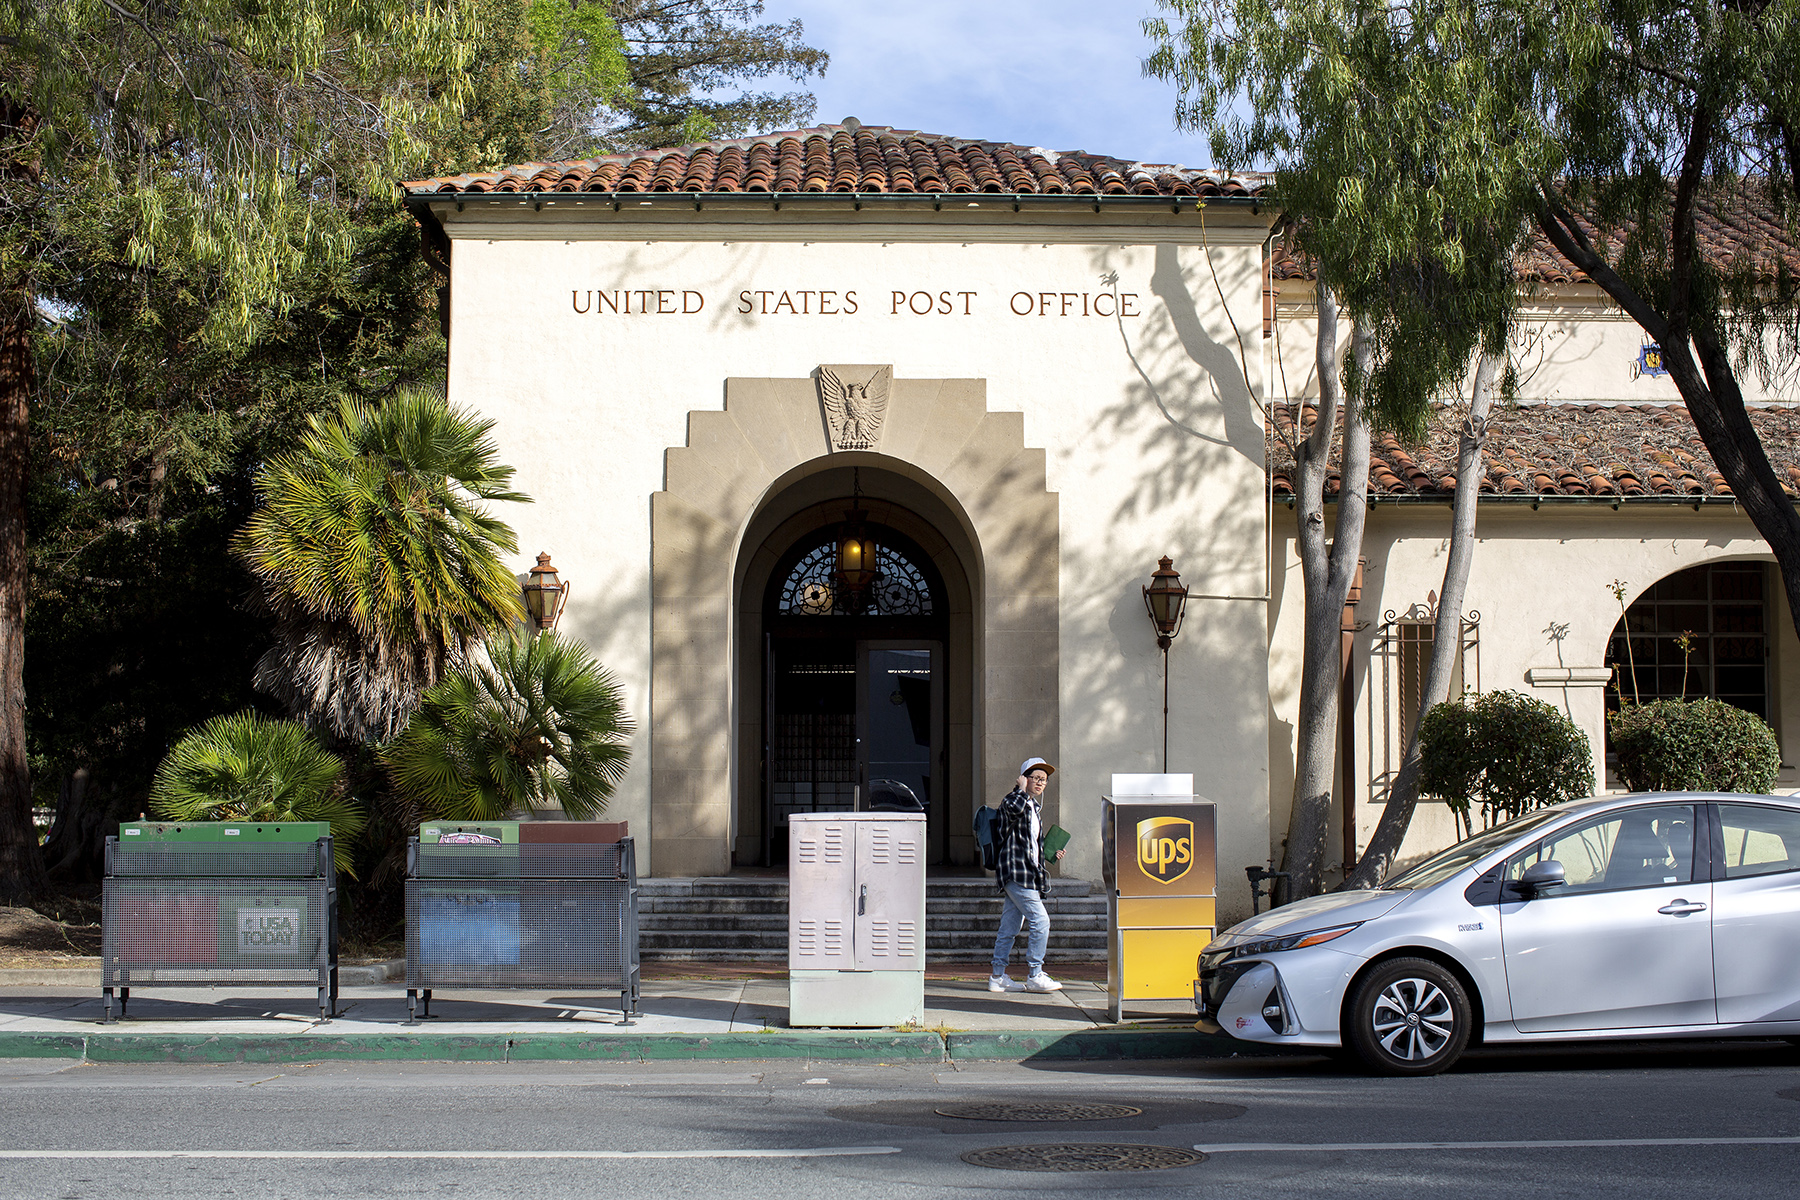 A pedestrian walks by the downtown Post Office, a historic Mission Revival style building built in the 1930s, in Palo Alto, Calif., on April, 16, 2019.